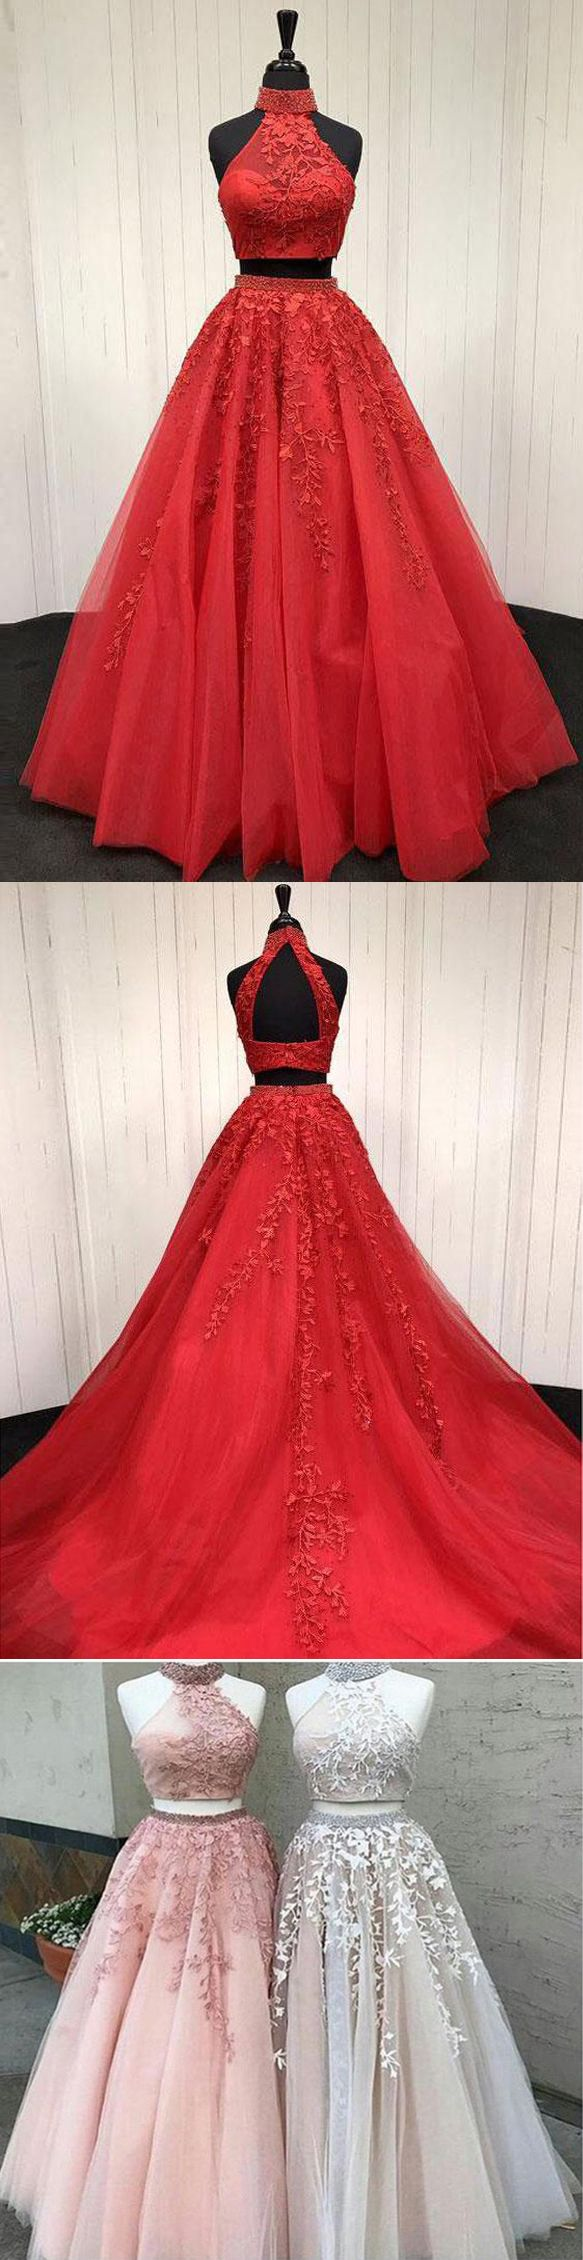 Fashion lace appliques backless pieces red prom dresses evening